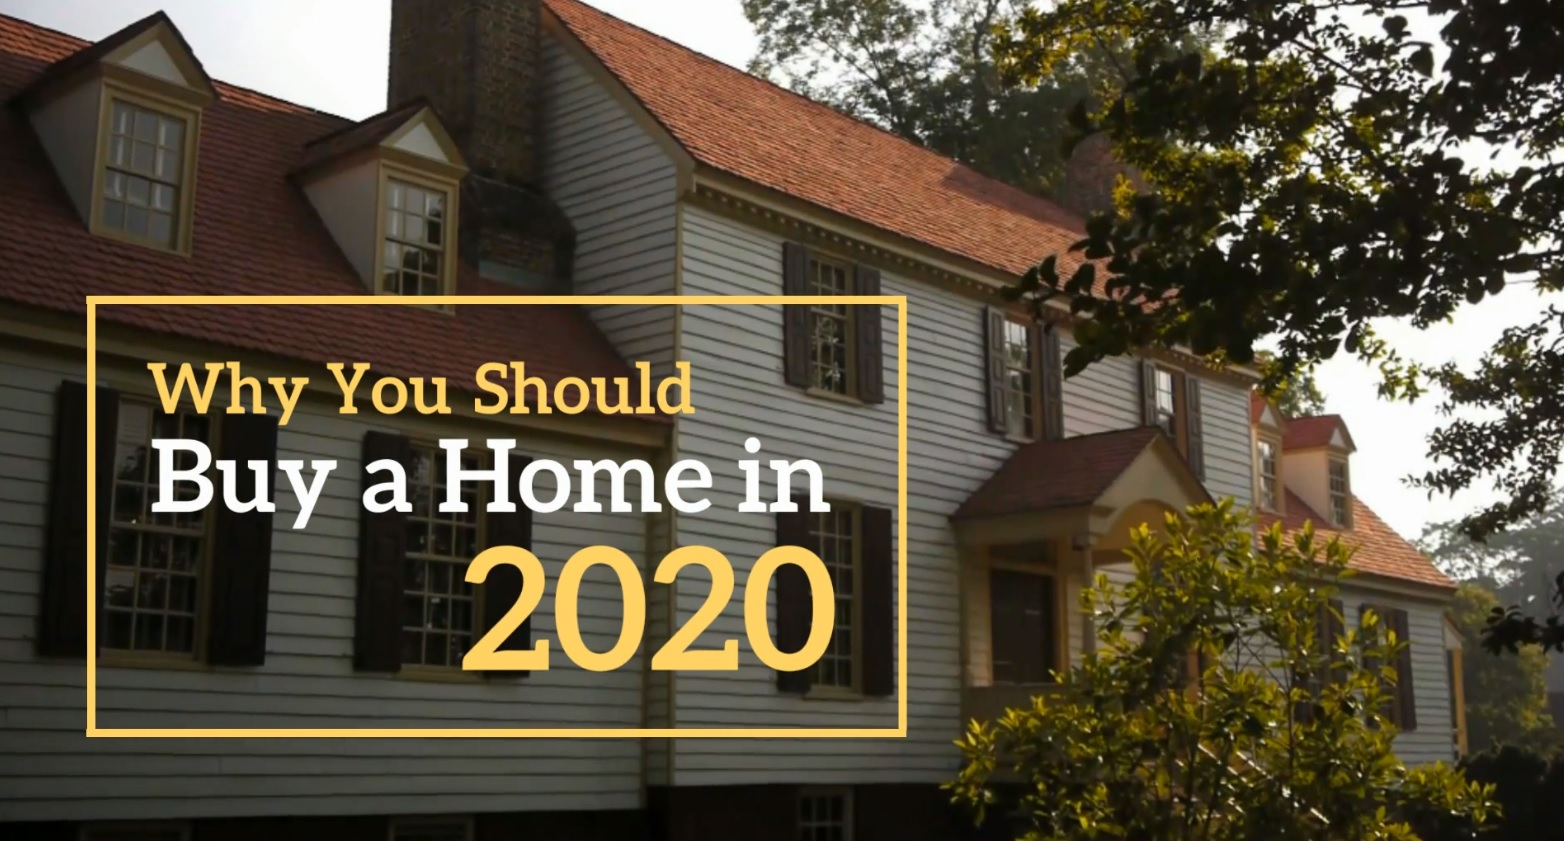 Should You Buy A Home In 2020?